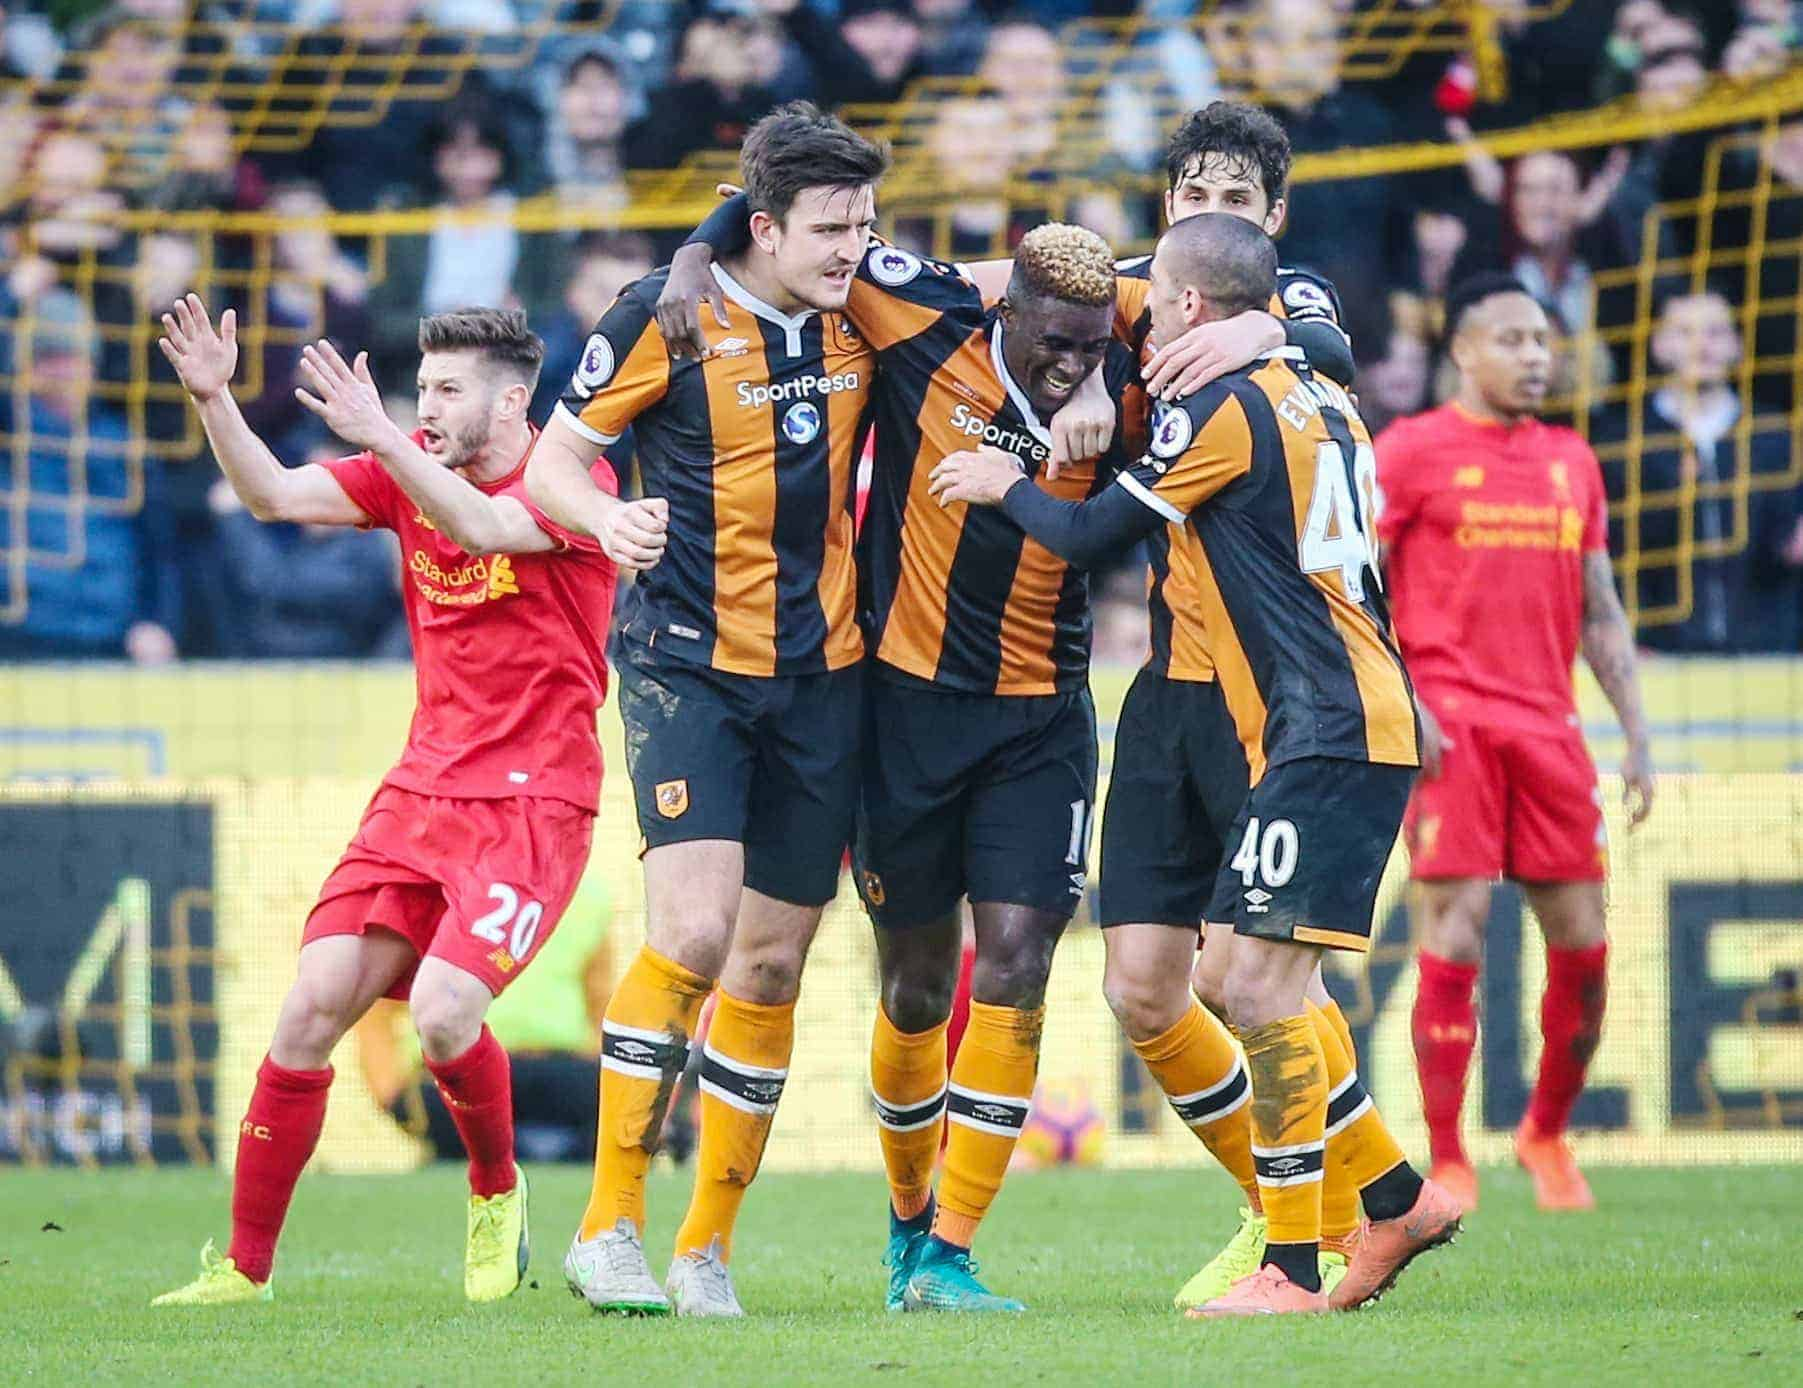 Hull City's Alfred N'Diaye (centre) celebrates scoring his side's first goal of the game during the Premier League match at the KCOM Stadium (Picture by Danny Lawson PA Wire/PA Images)